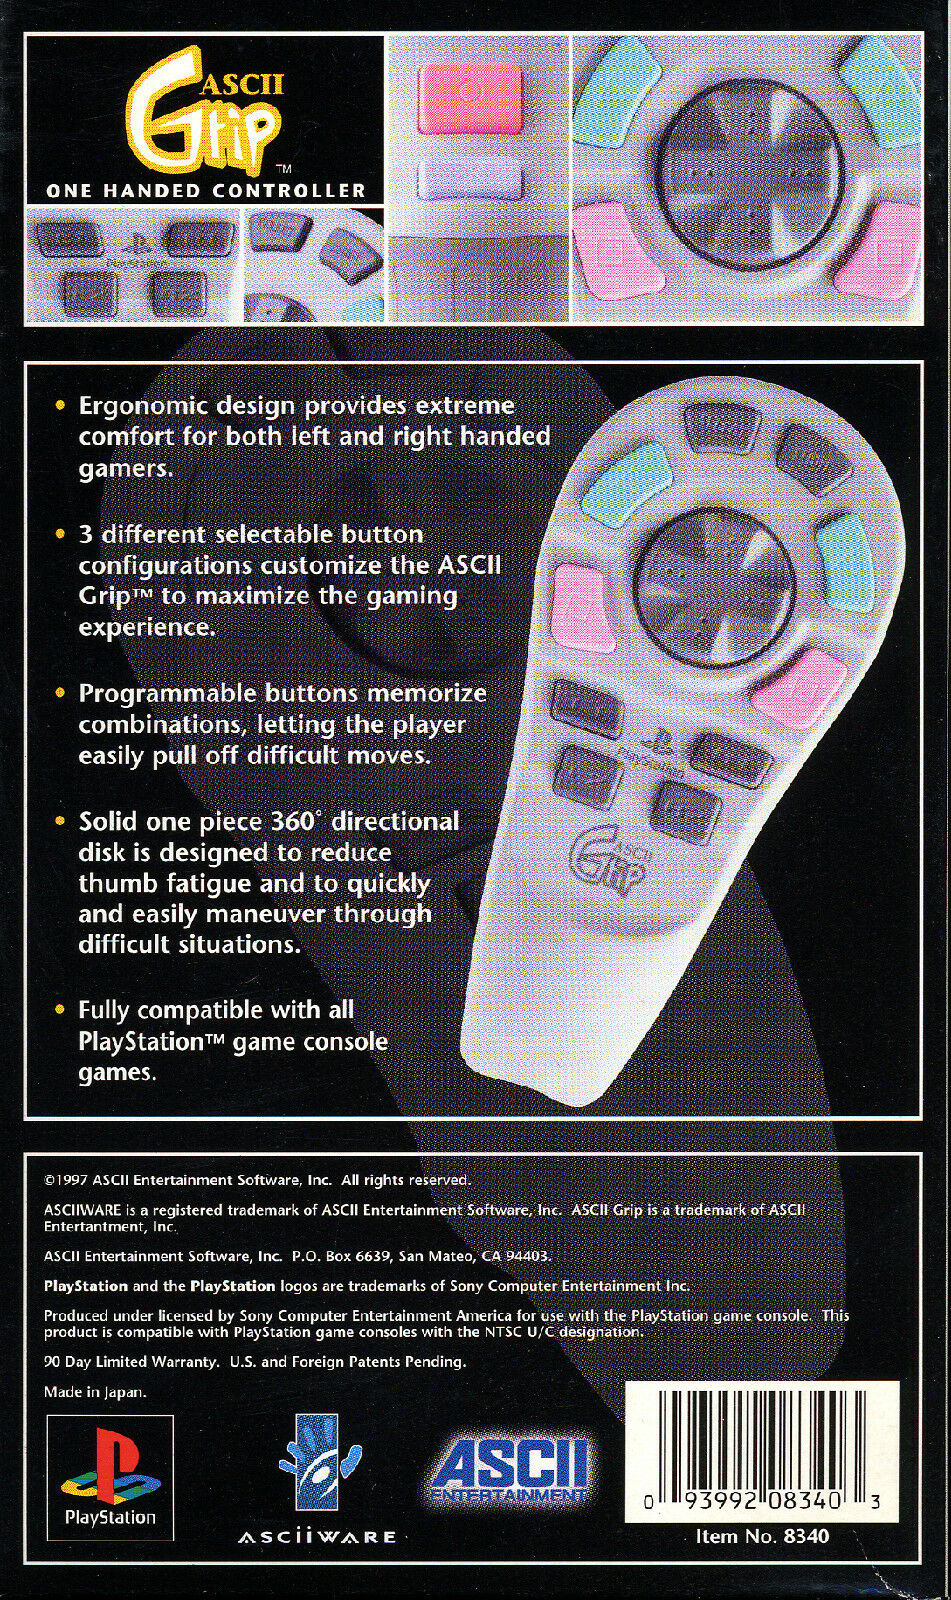 ASCII Grip One Handed PlayStation Ps1 Controller